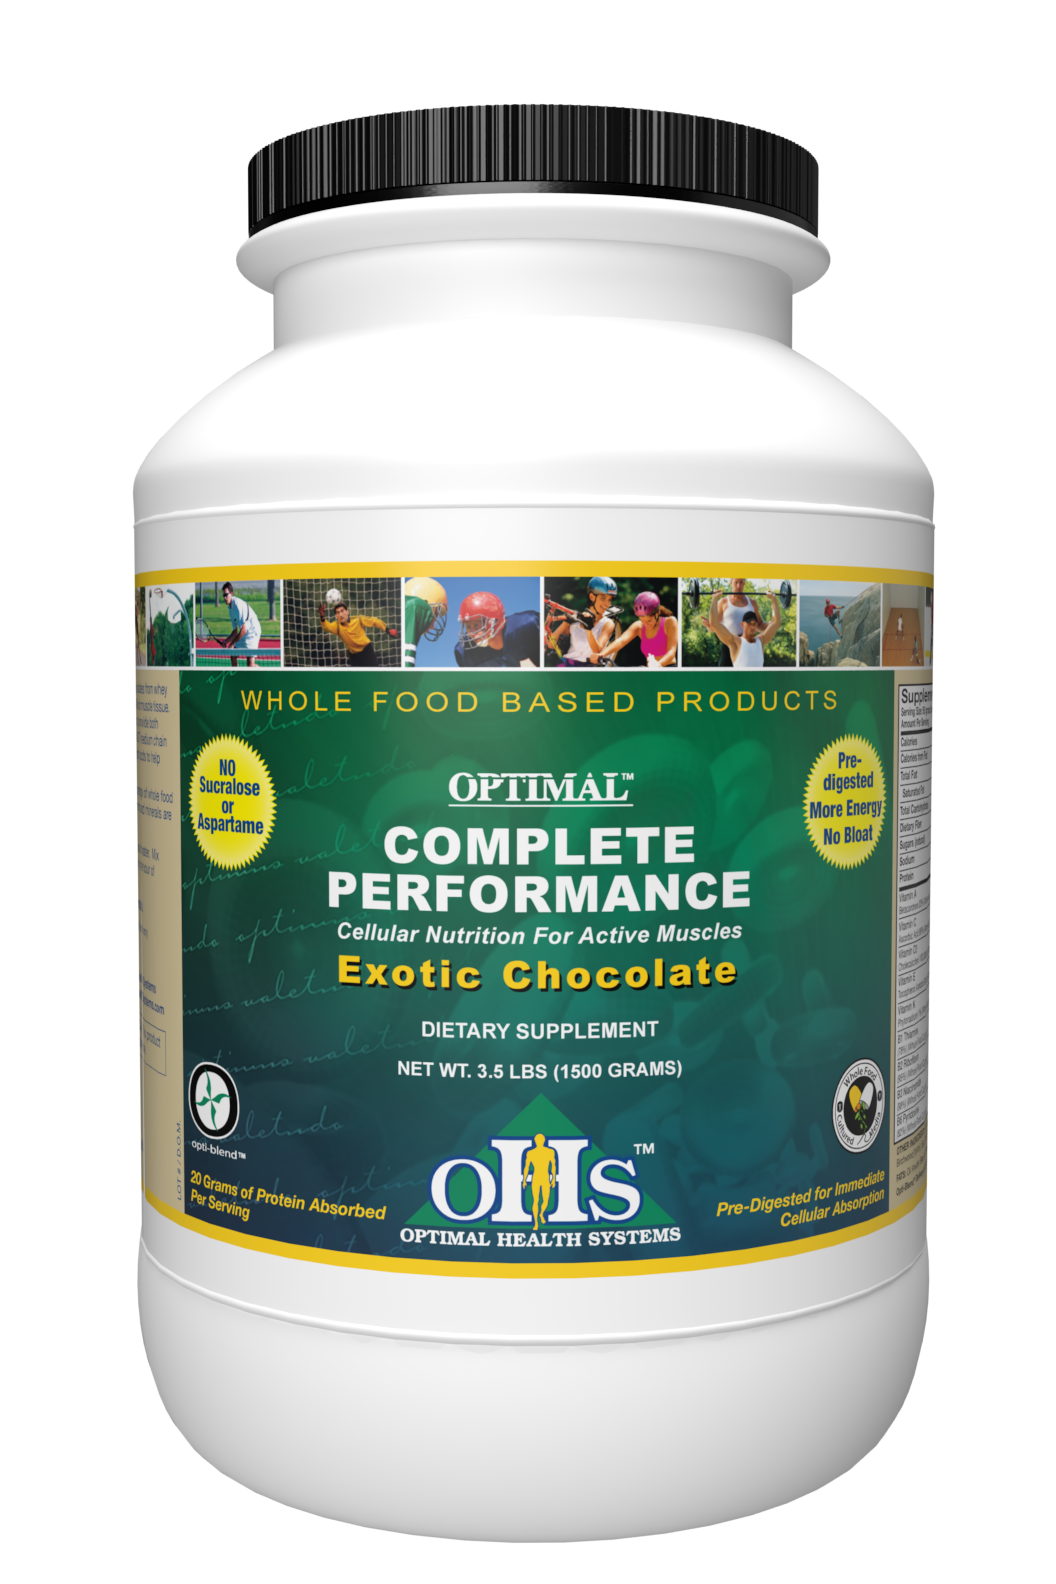 Optimal Complete Performance-Exotic Chocolate